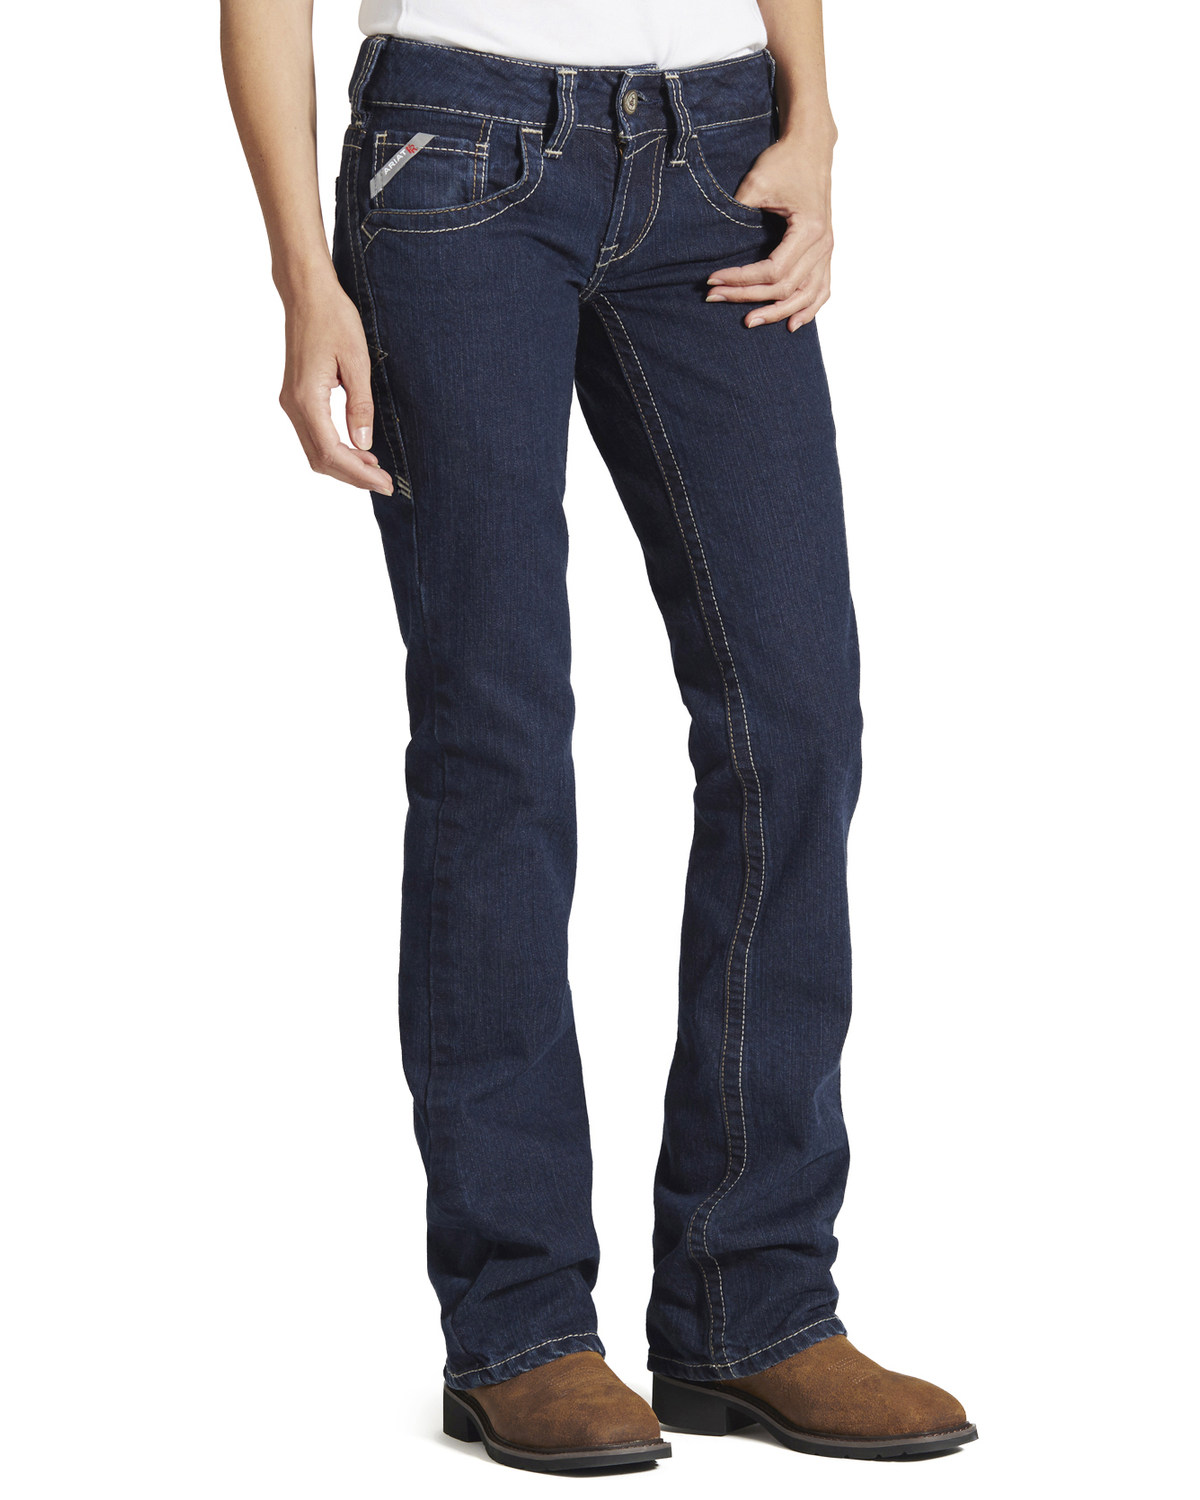 Men's Classic Bootcut Jeans. American Eagle Outfitters has been producing the finest quality jeans for over 40 years. Our bootcut jeans have been a staple since the beginning, with a casual flare that looks good with everything from boots to flip flops. As soon as you try them on, it's clear why AE is America's favorite jeans brand.